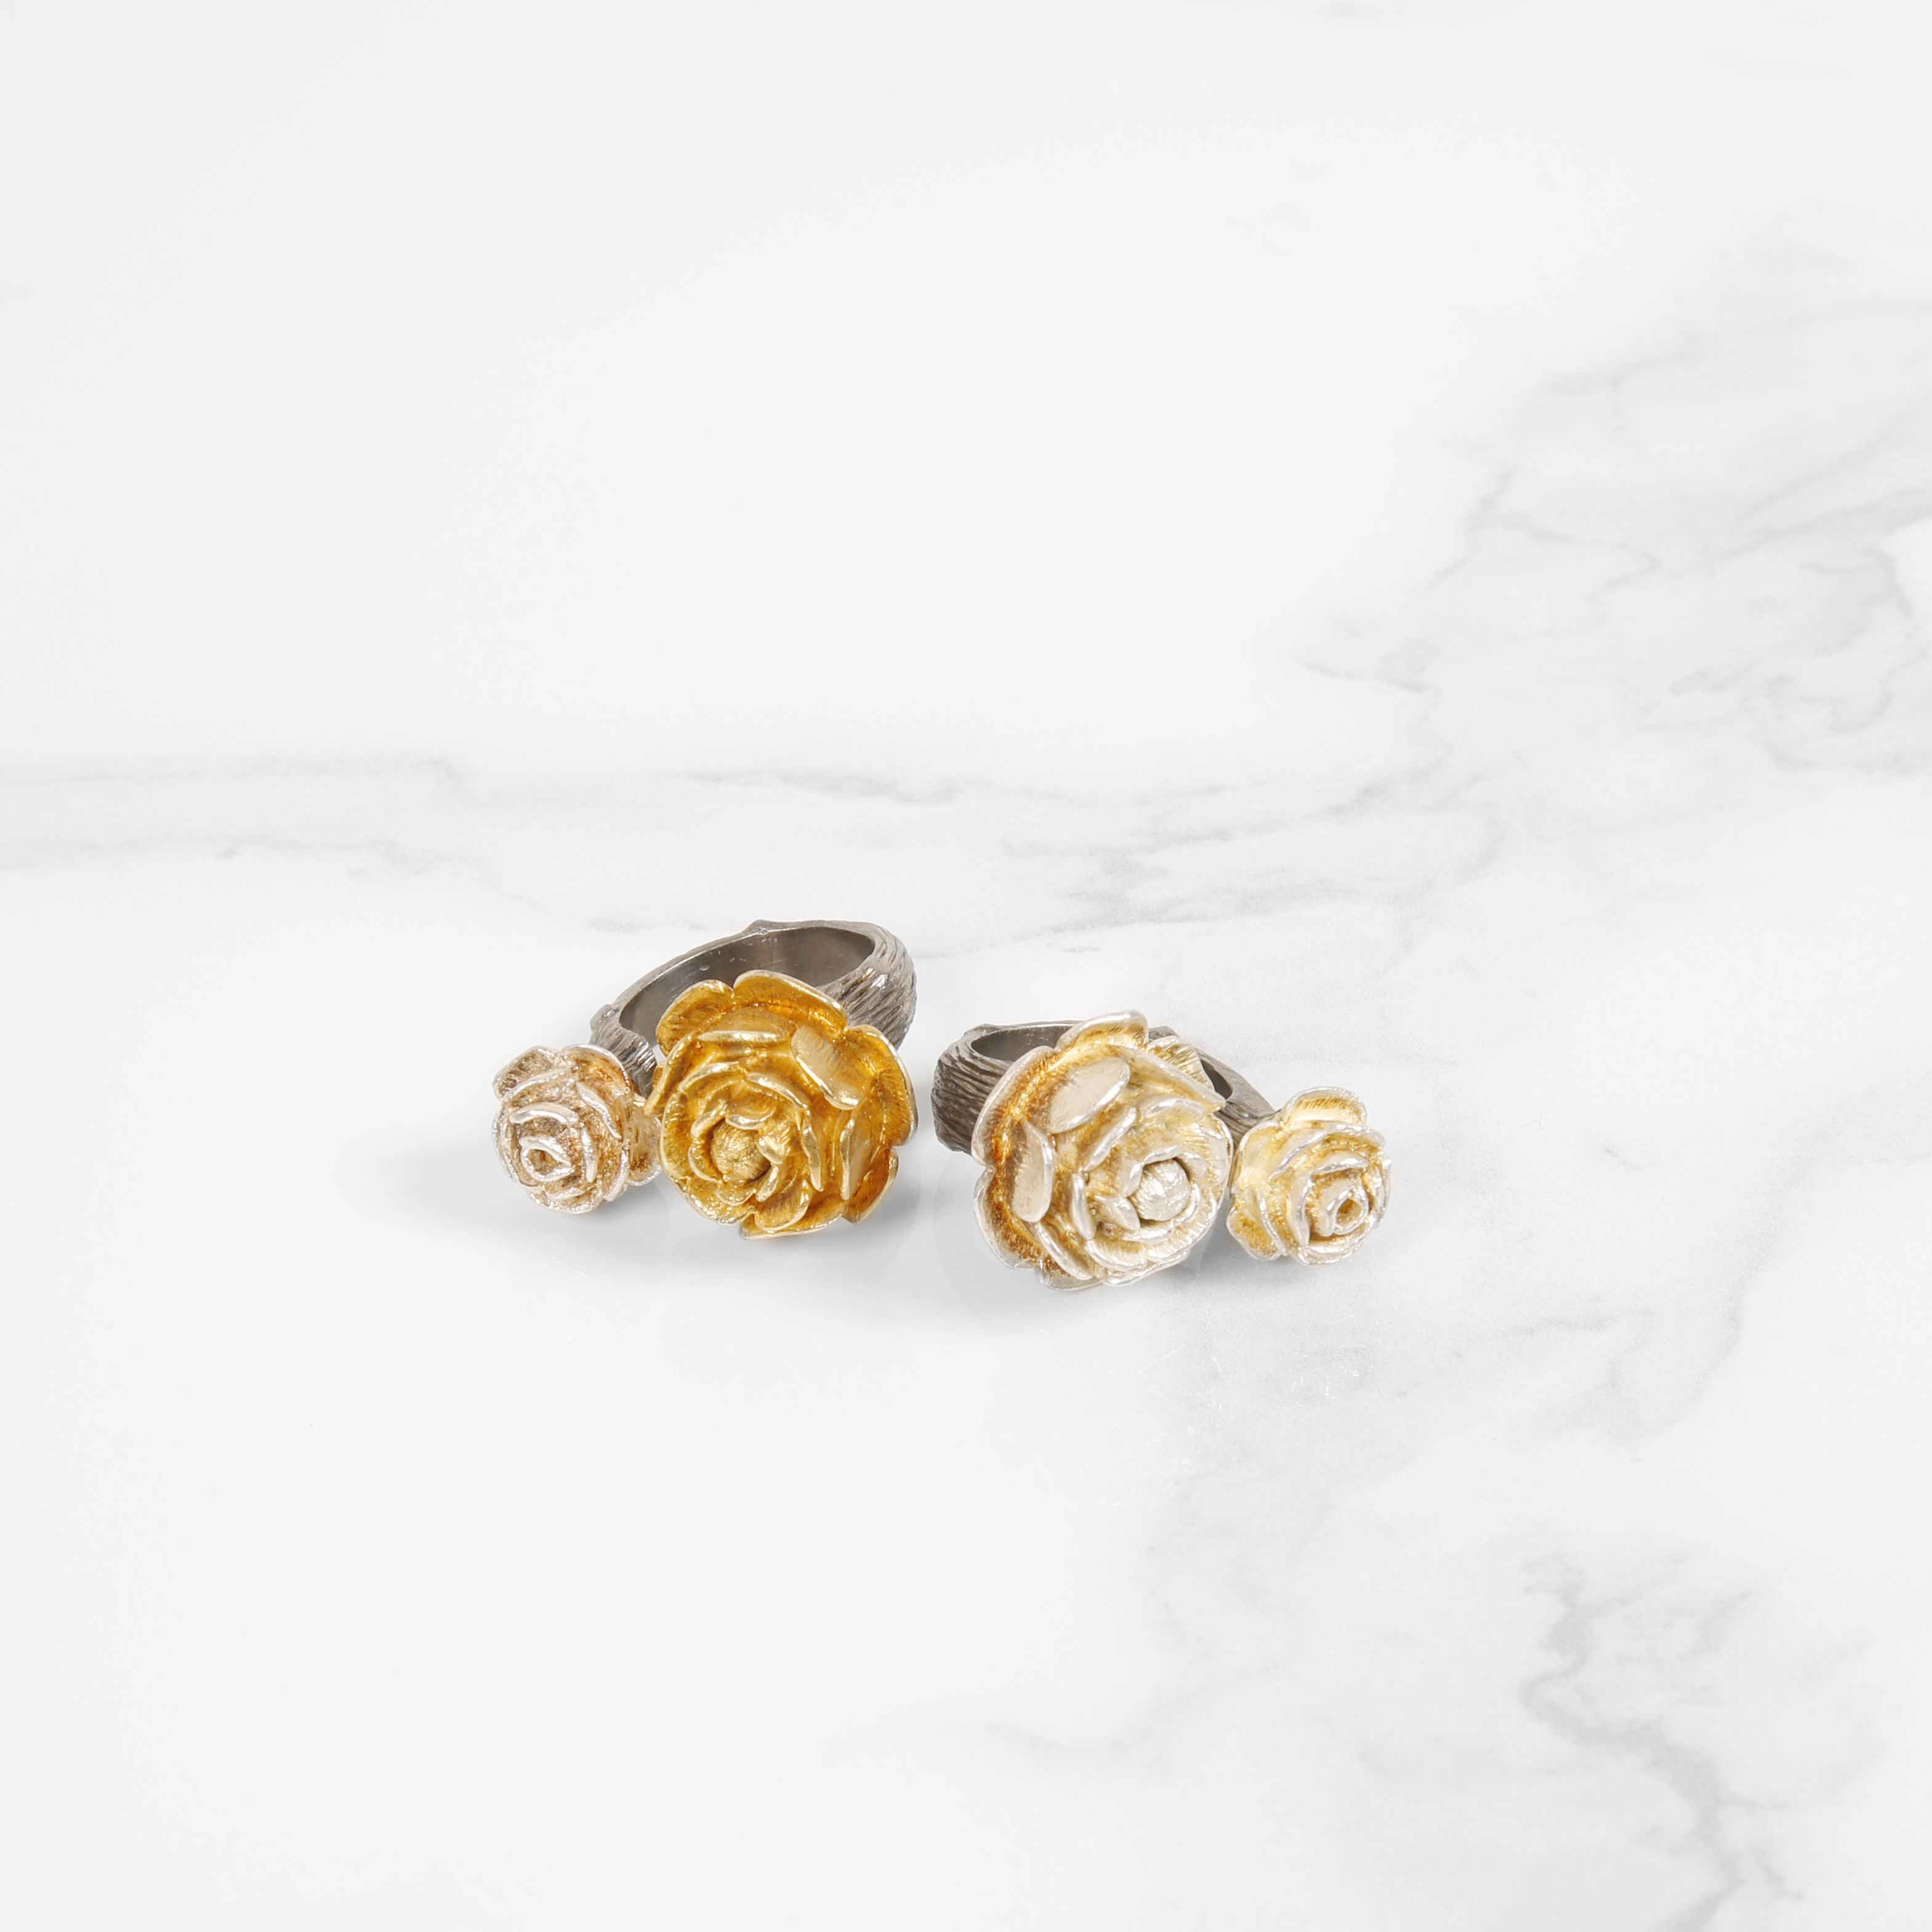 Double rose branch ring